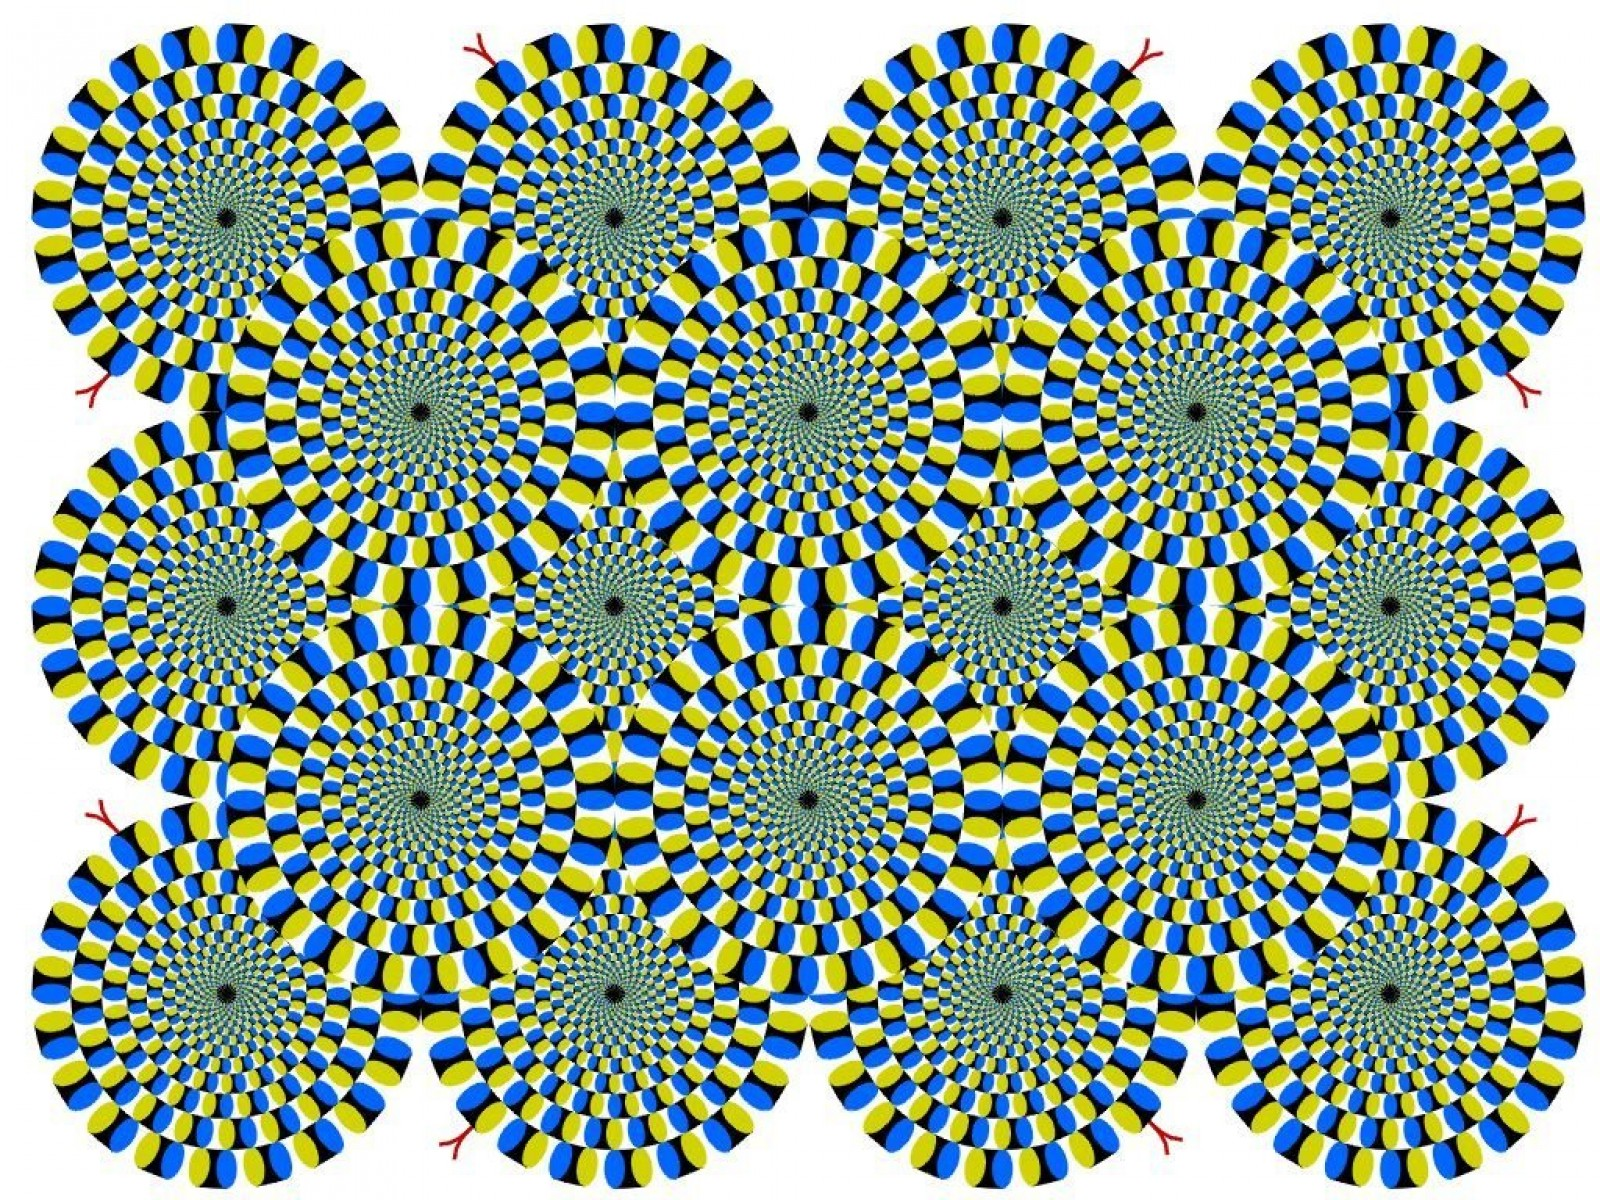 illusions optical illusion science trippy eye animated illusionary moving cool wallpapers brain eyes tricks mind perception visual move ilusion fast